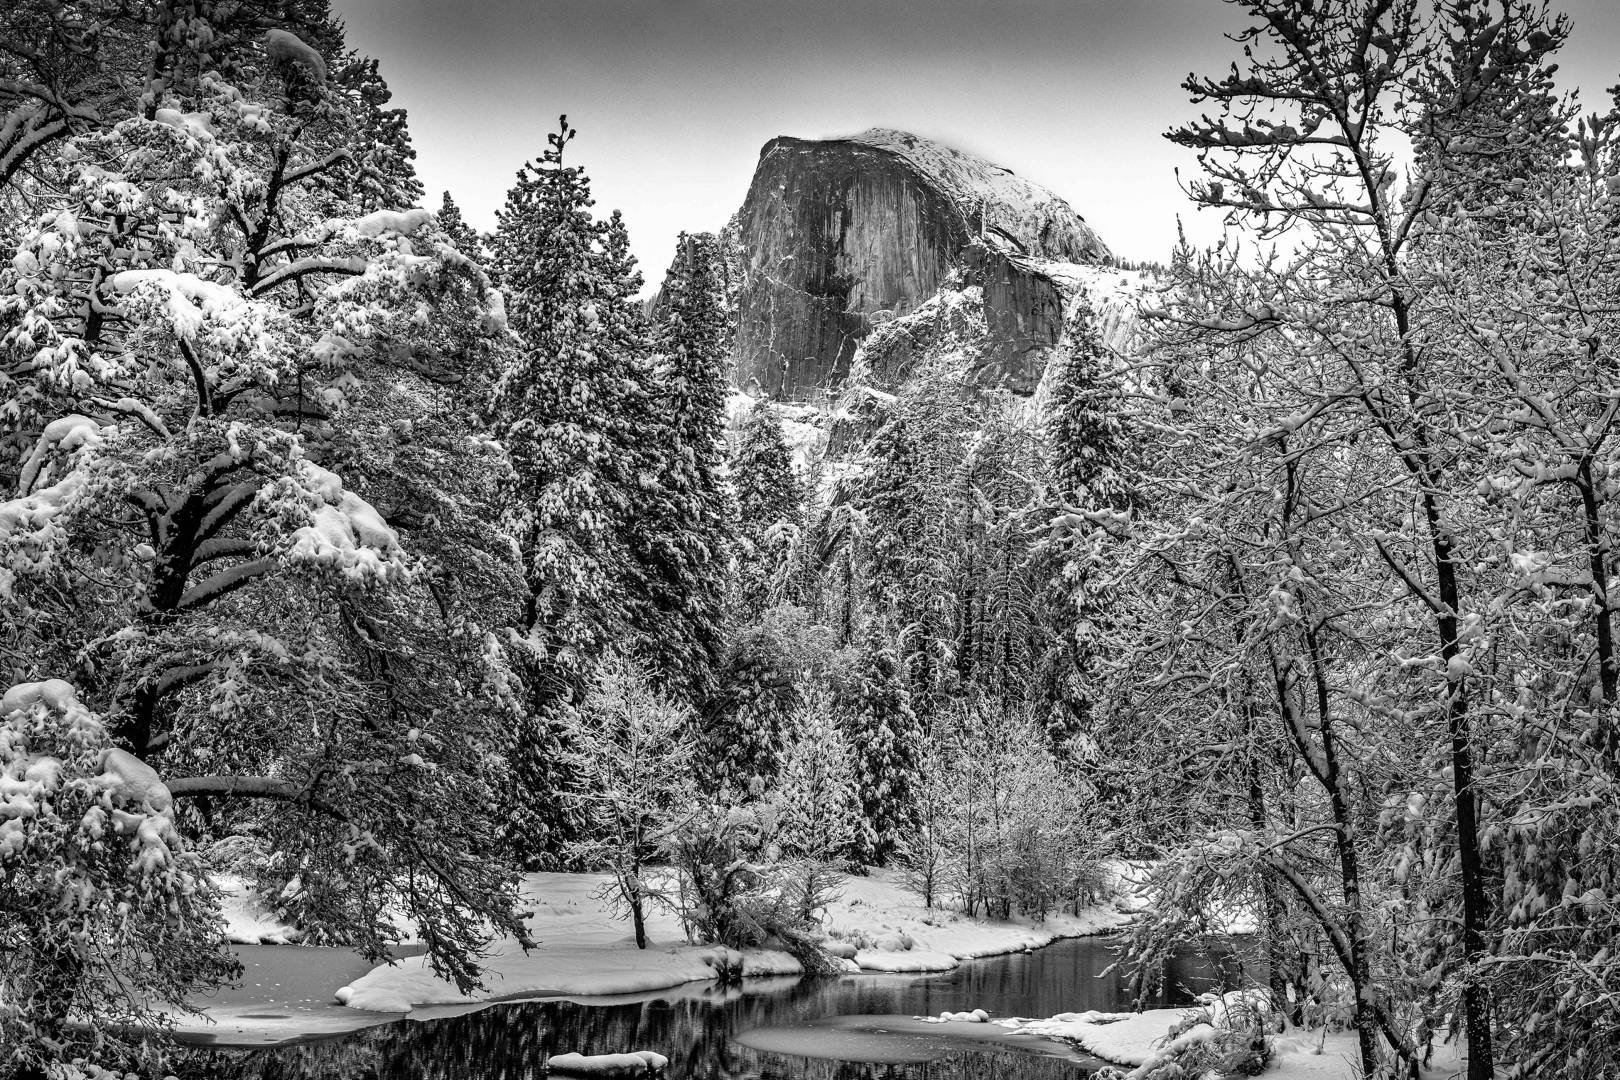 Half Dome – taken from the bridge in the valley